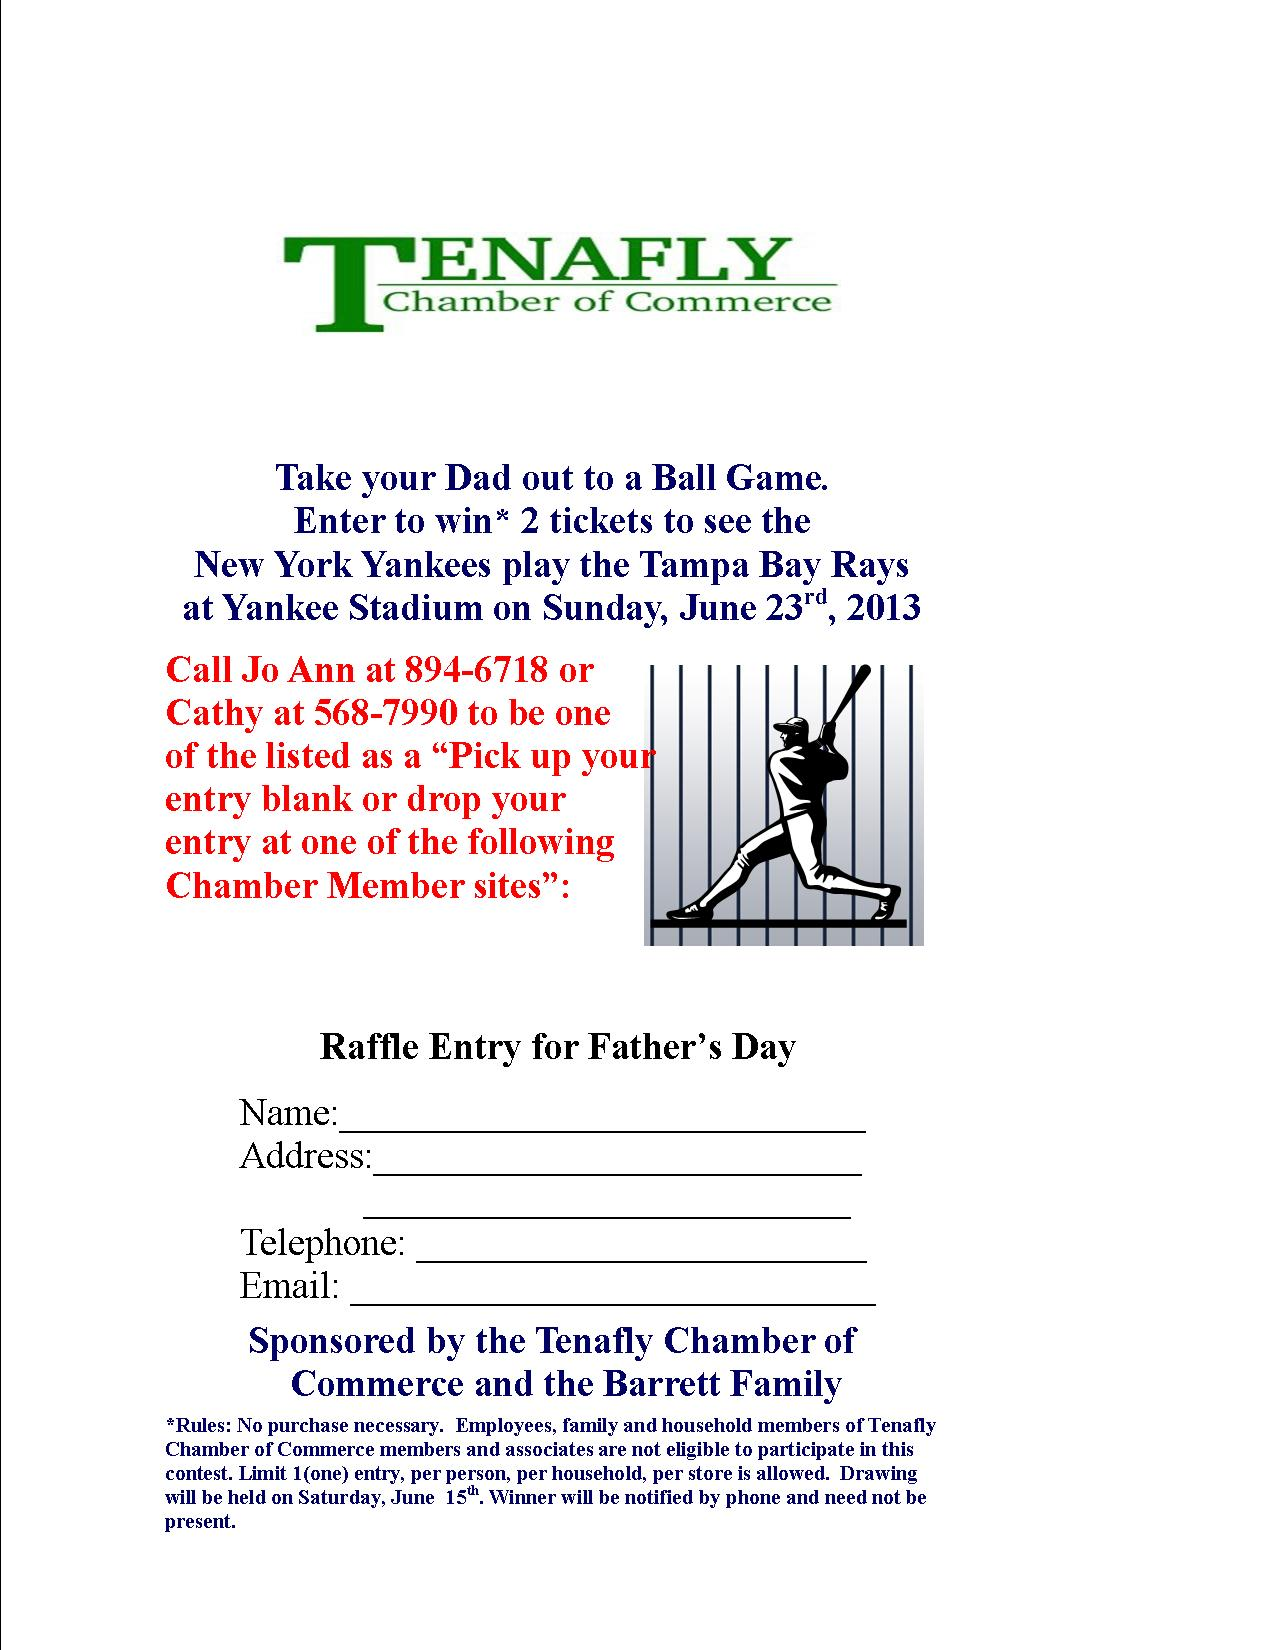 Stop by participating Tenafly Businesses and Enter to Win Two NY Yankee Tickets!